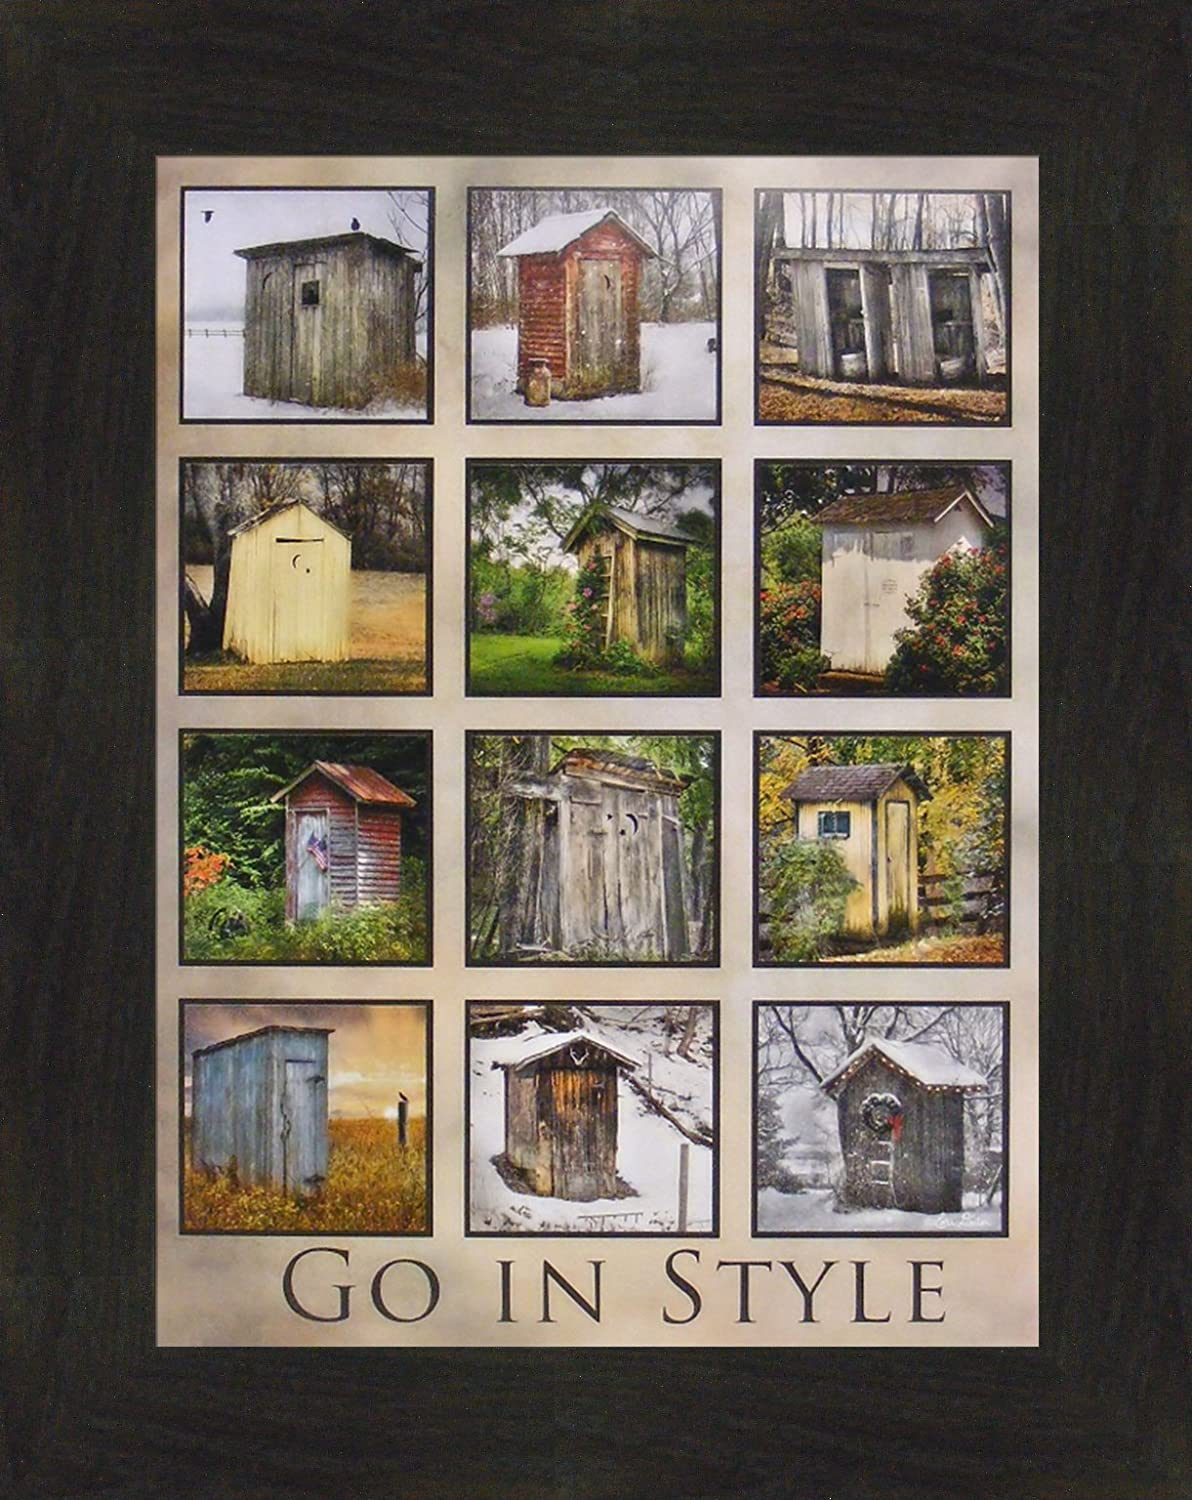 Go in Style by Lori Deiter Free shipping on posting reviews Photo New mail order 16x20 Collage Bathroom Outhouse